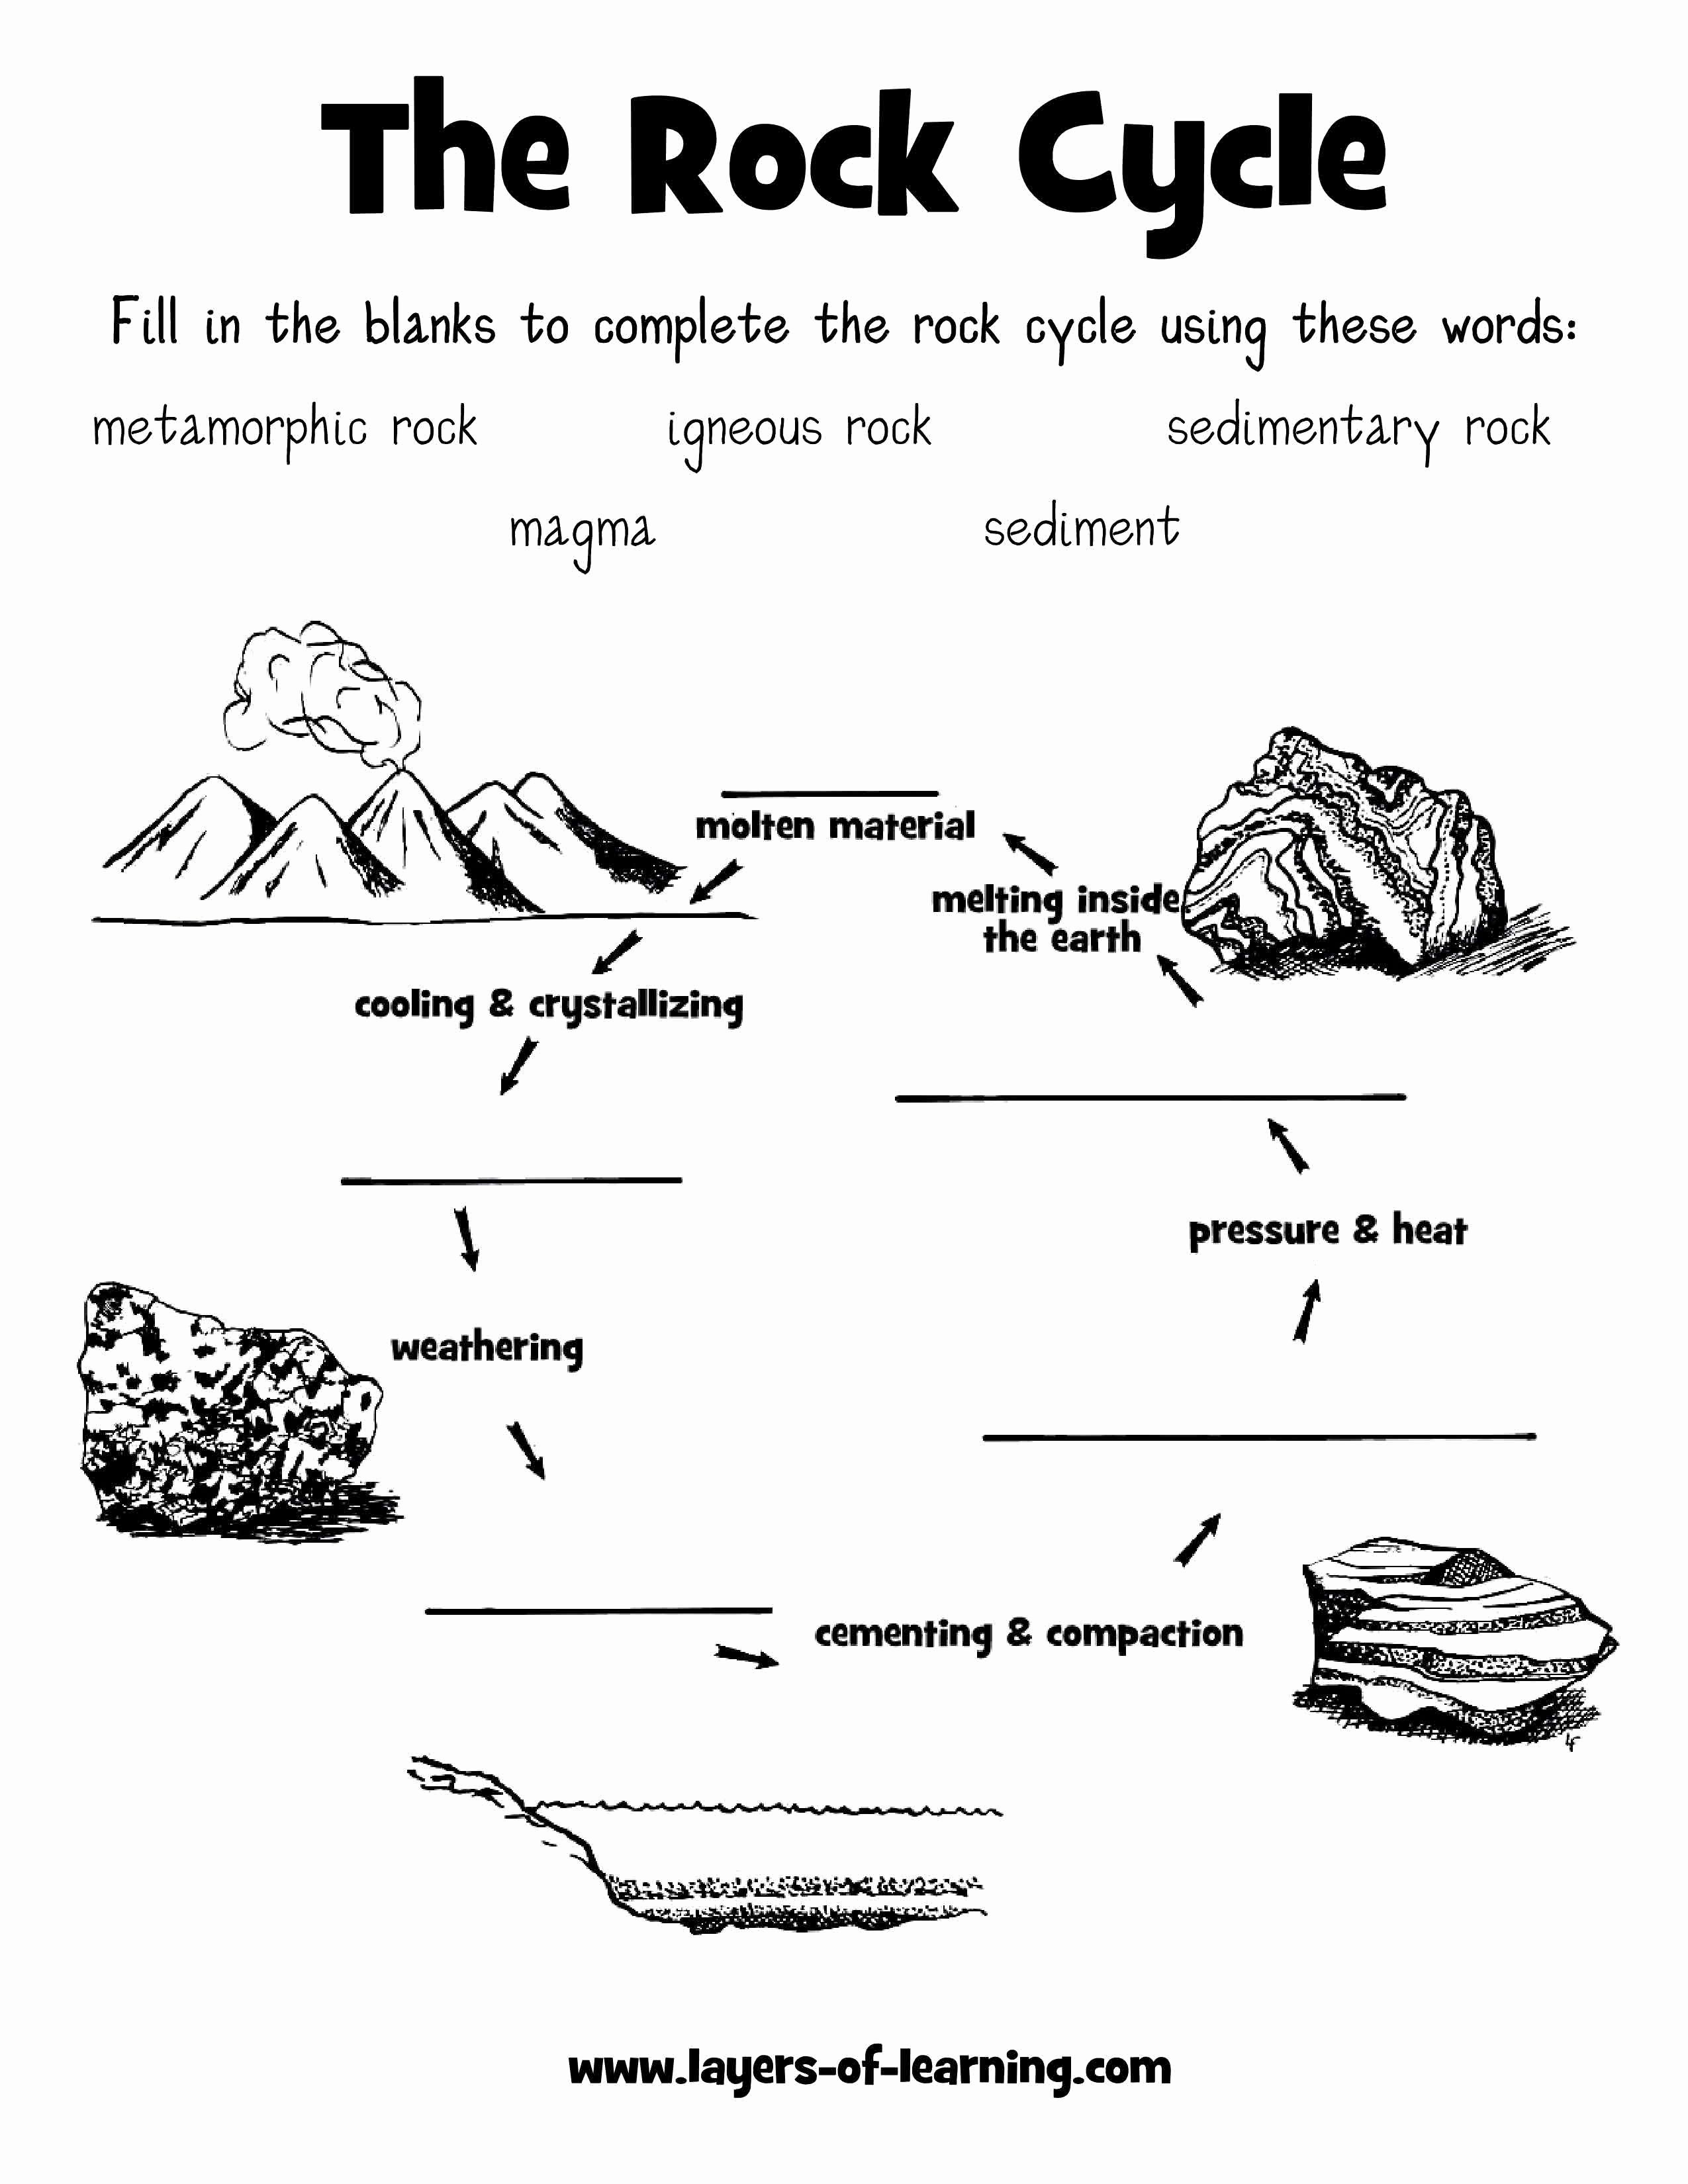 Rock Cycle Diagram Worksheet Unique Rock Cycle Worksheet Layers Of Learning